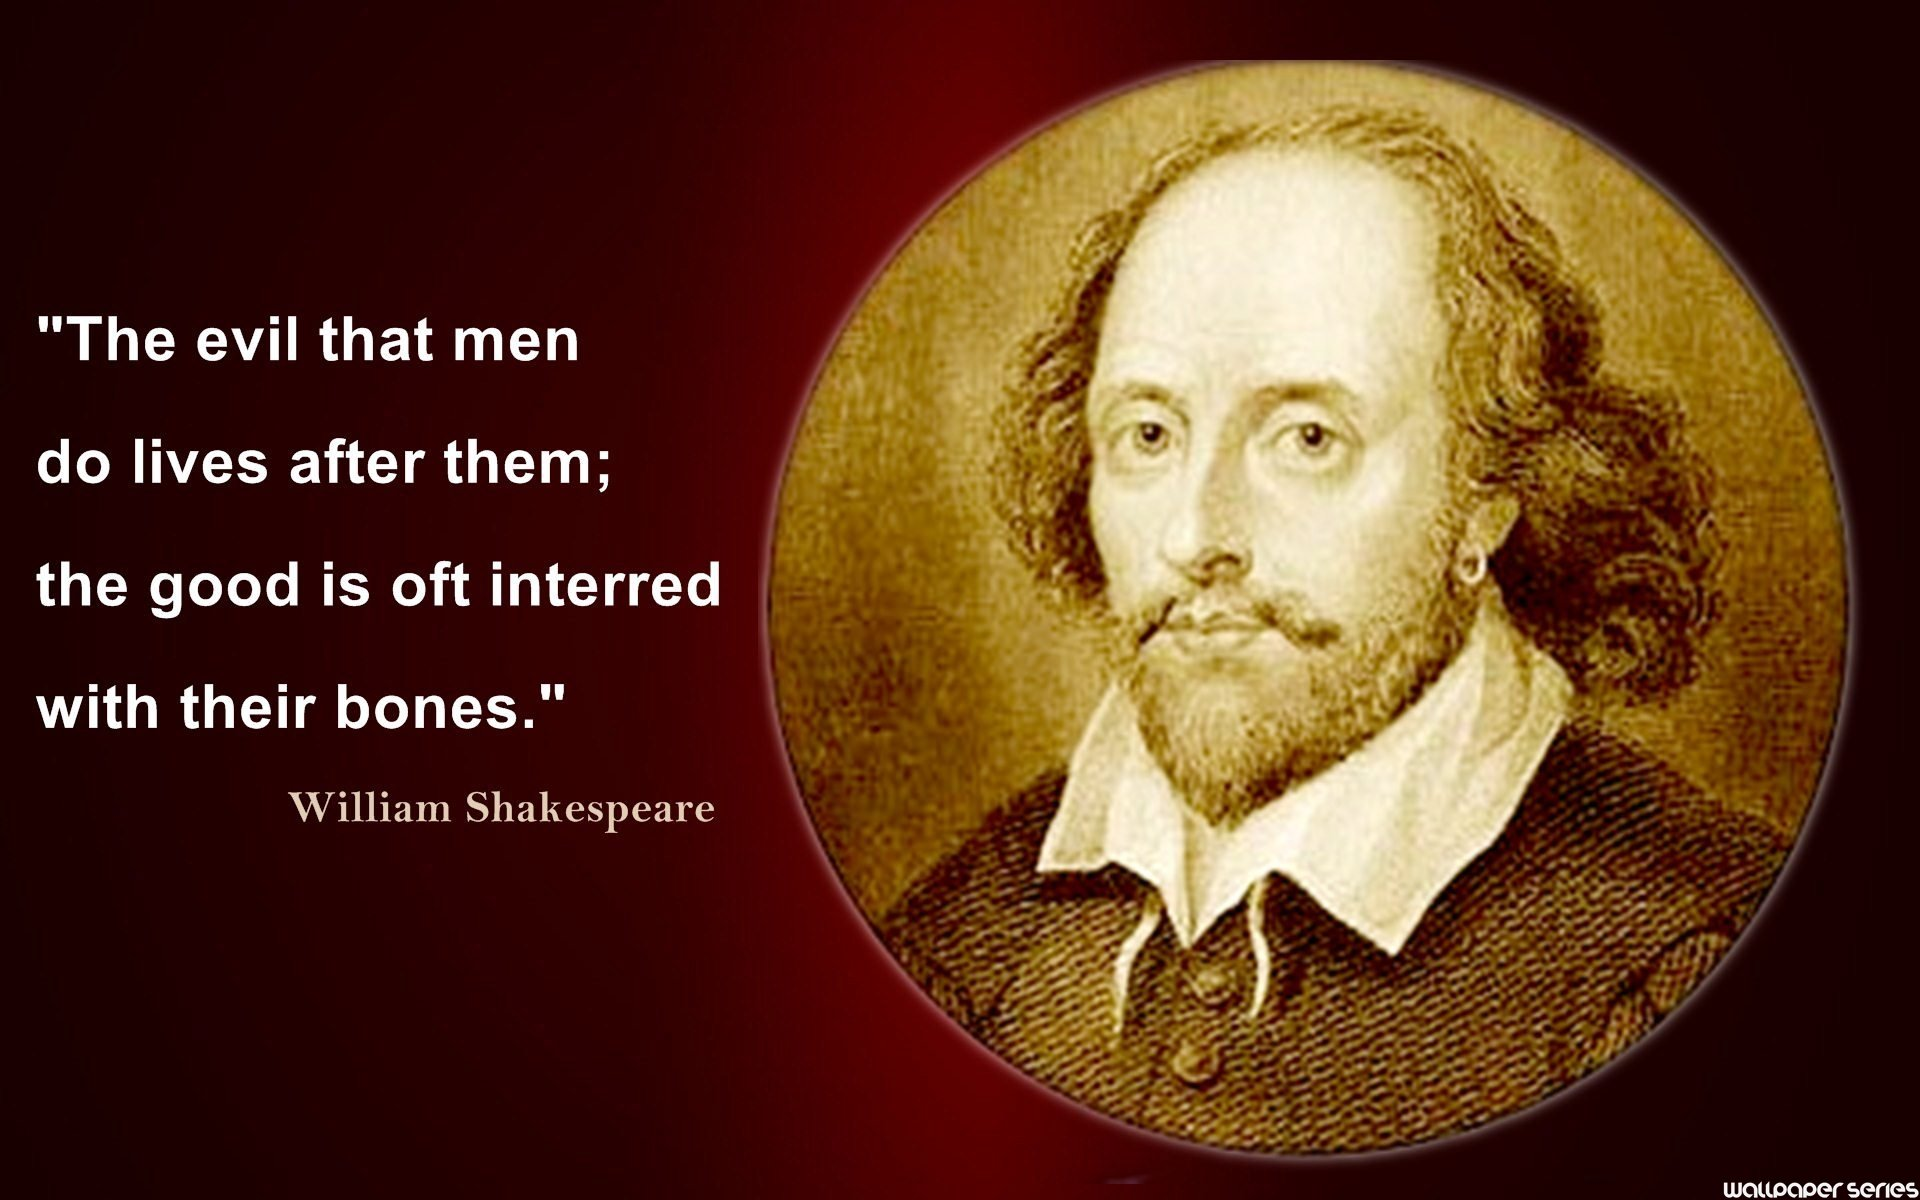 William Shakespeare wallpaper 1920x1200 65510 1920x1200